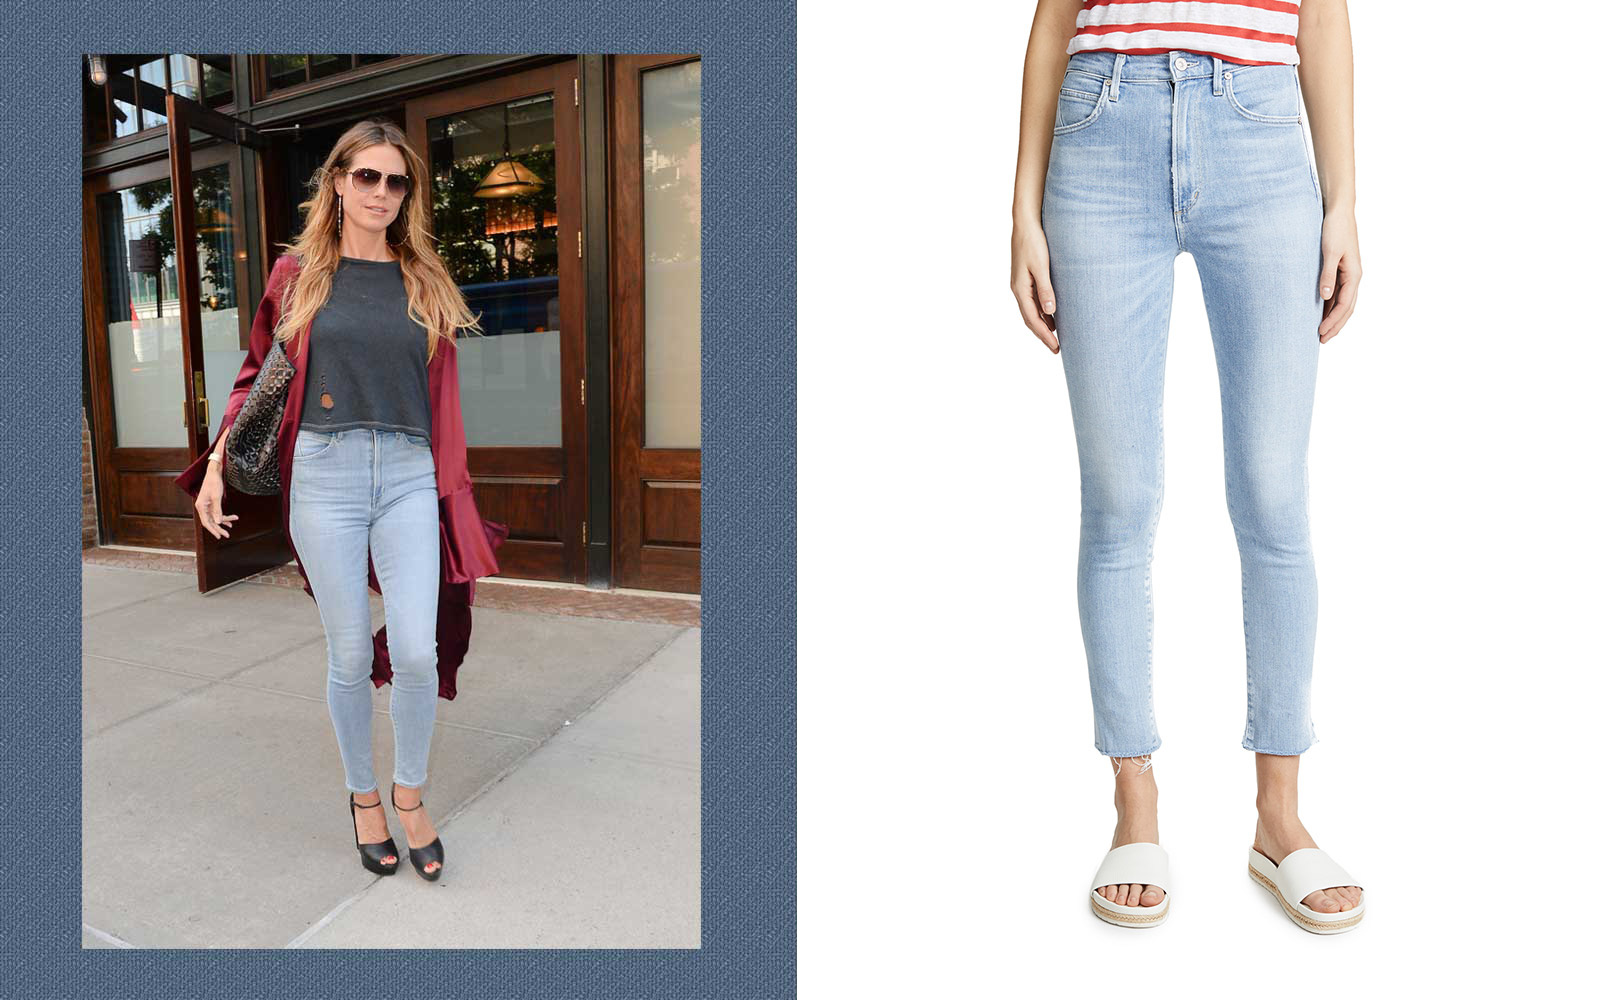 foto 8 Celebrity-Approved Ways to Take Your Jeans on a Date